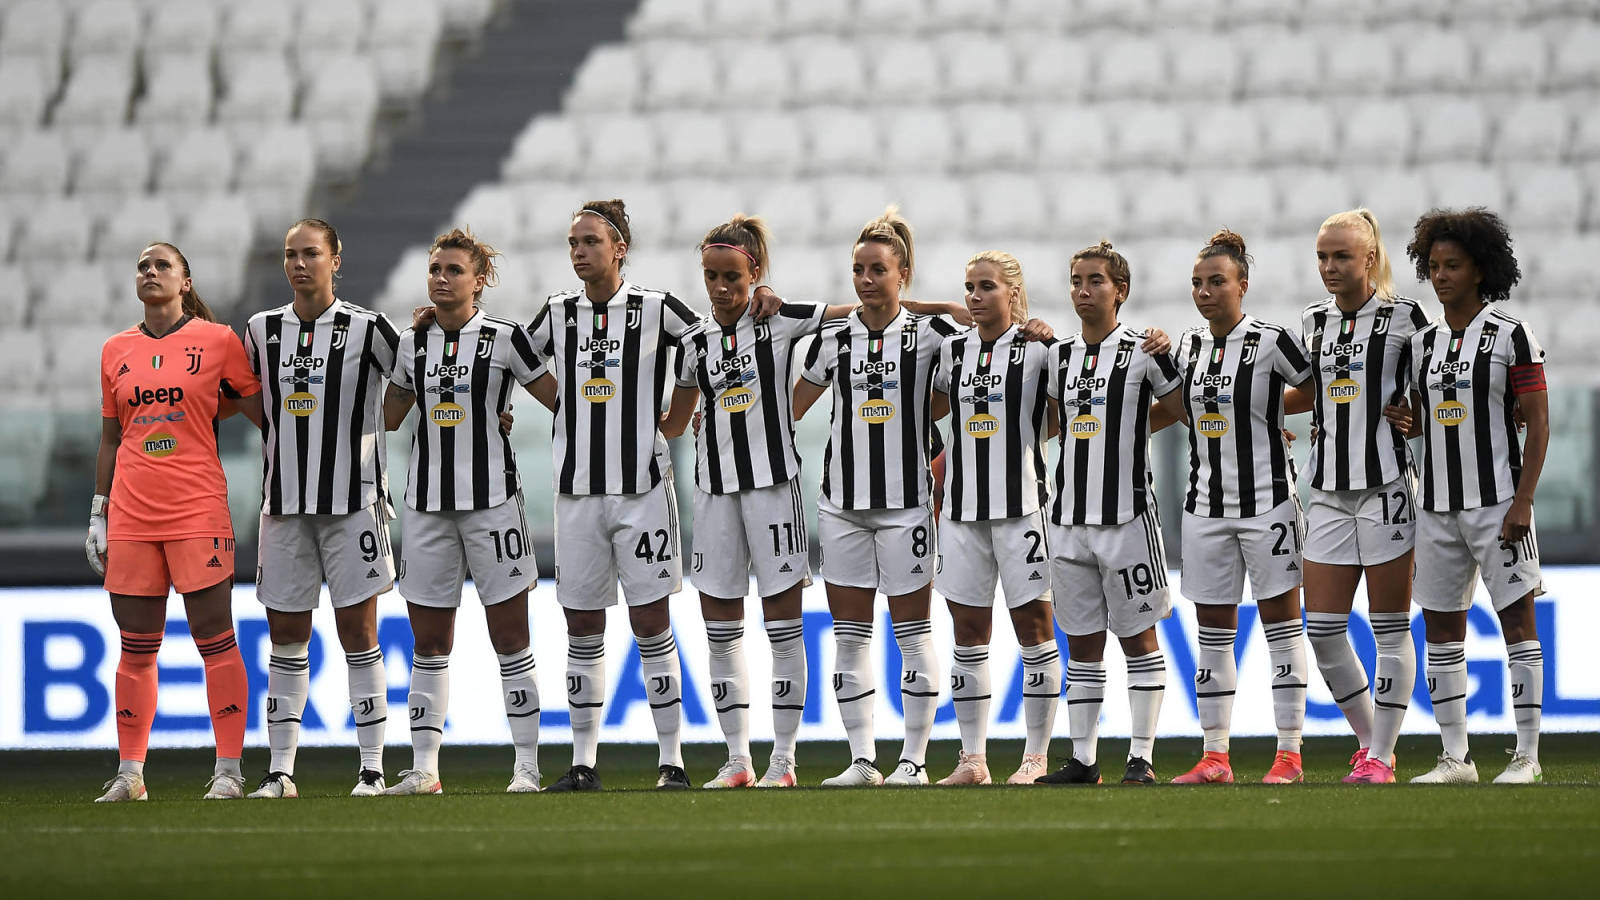 Juventus Women apologize for tweet with racist gesture